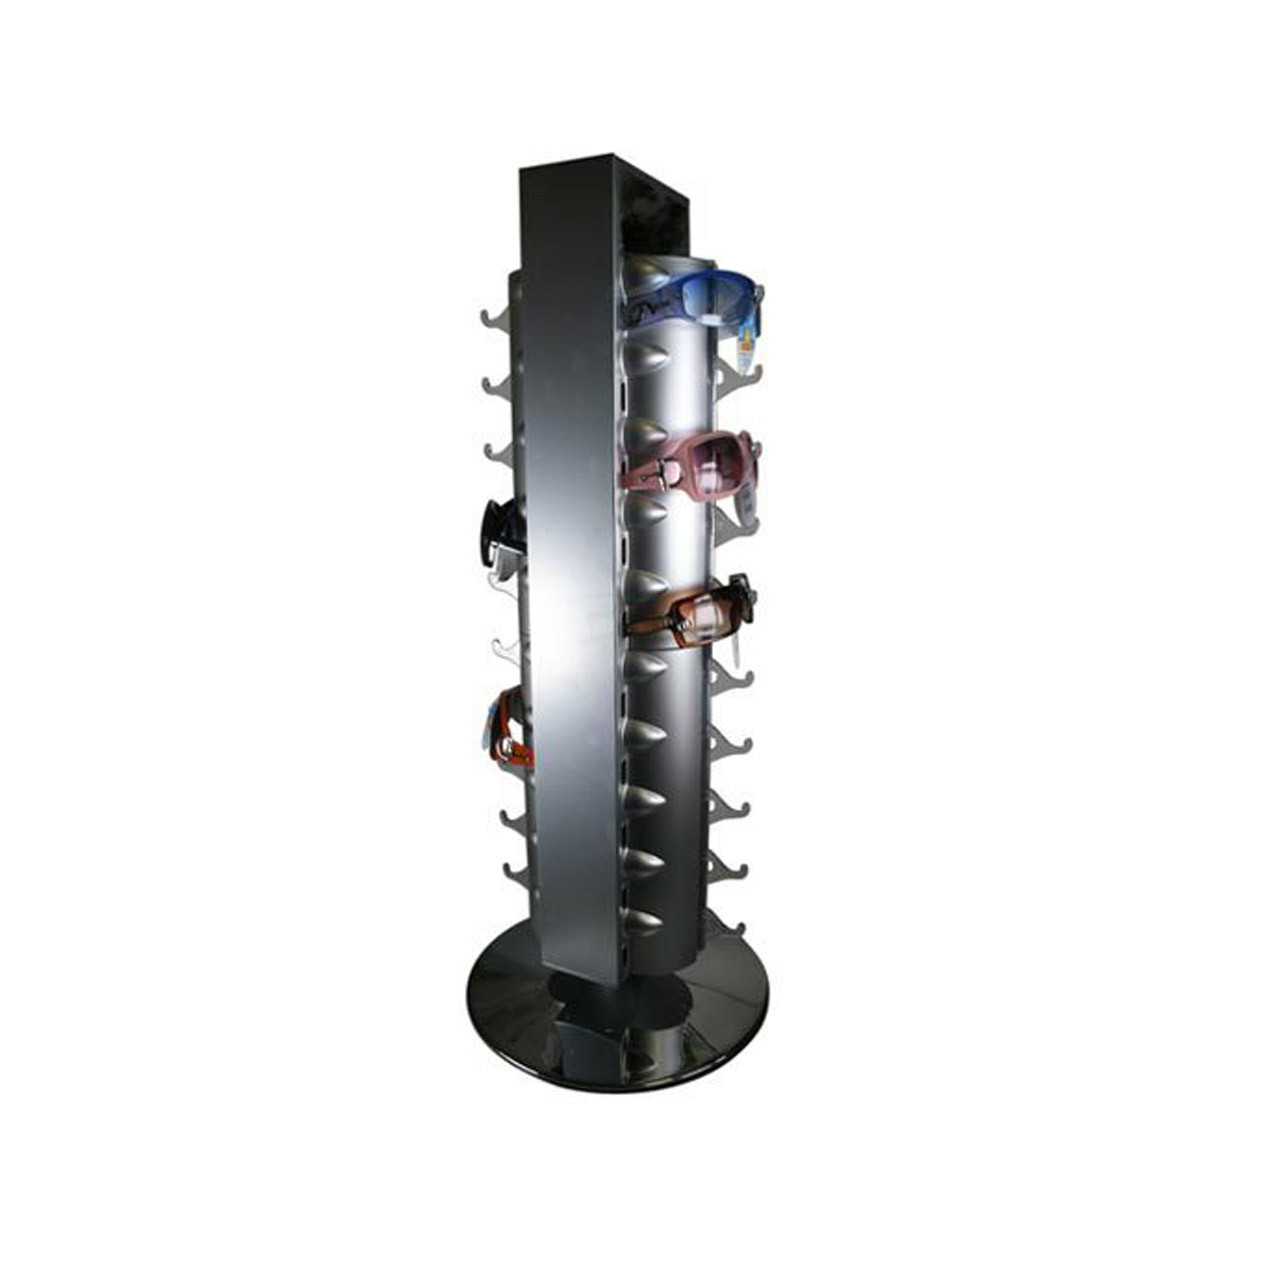 Rotating Counter-Top Sunglass Display | Holds 20 Pair Sunglasses